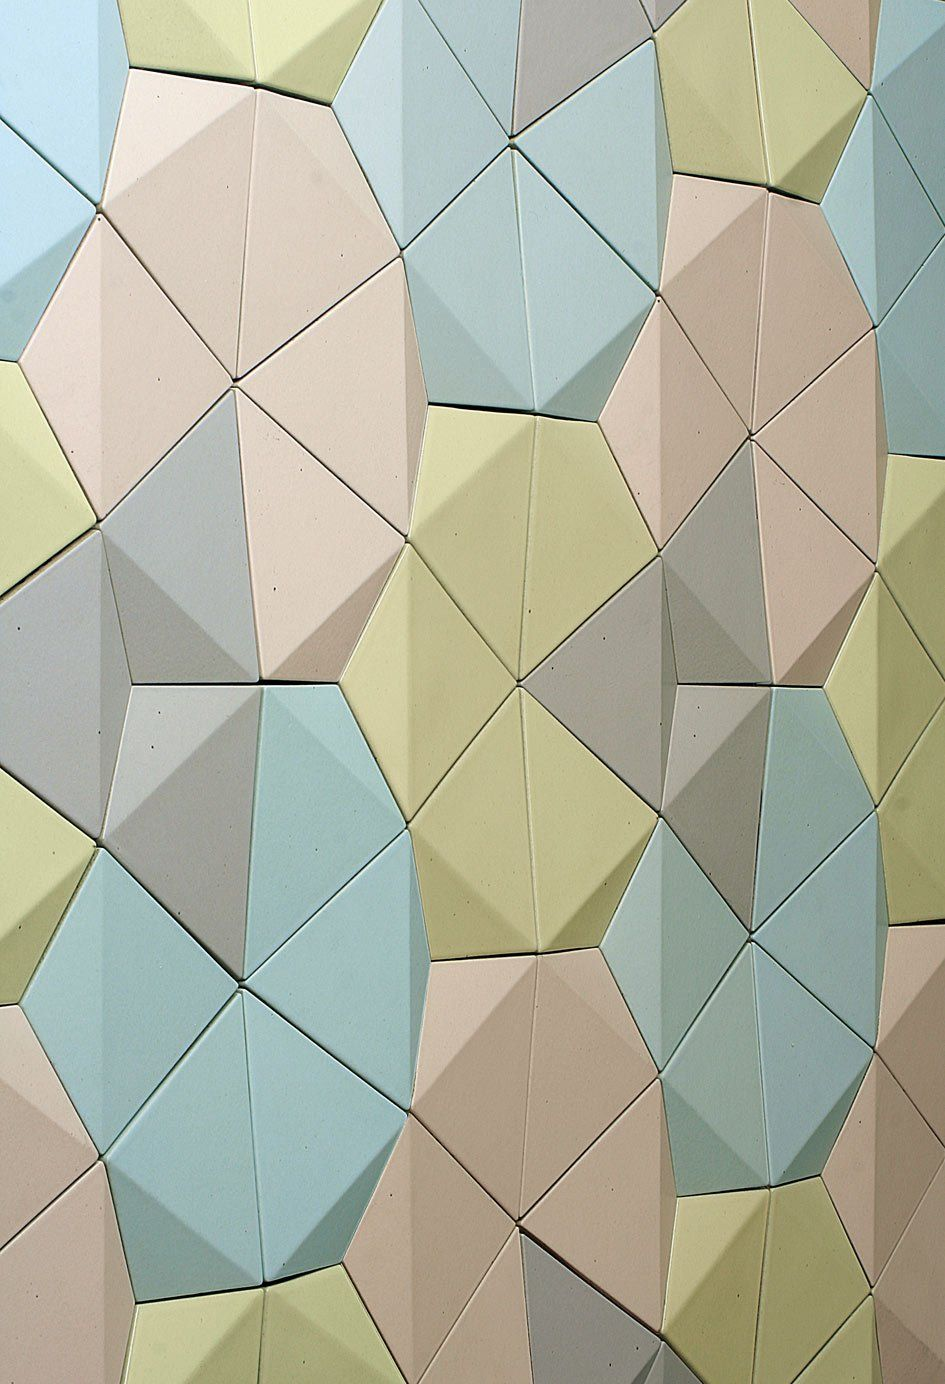 origami tiles | Rouai | Pinterest | Origami, Walls and Patterns